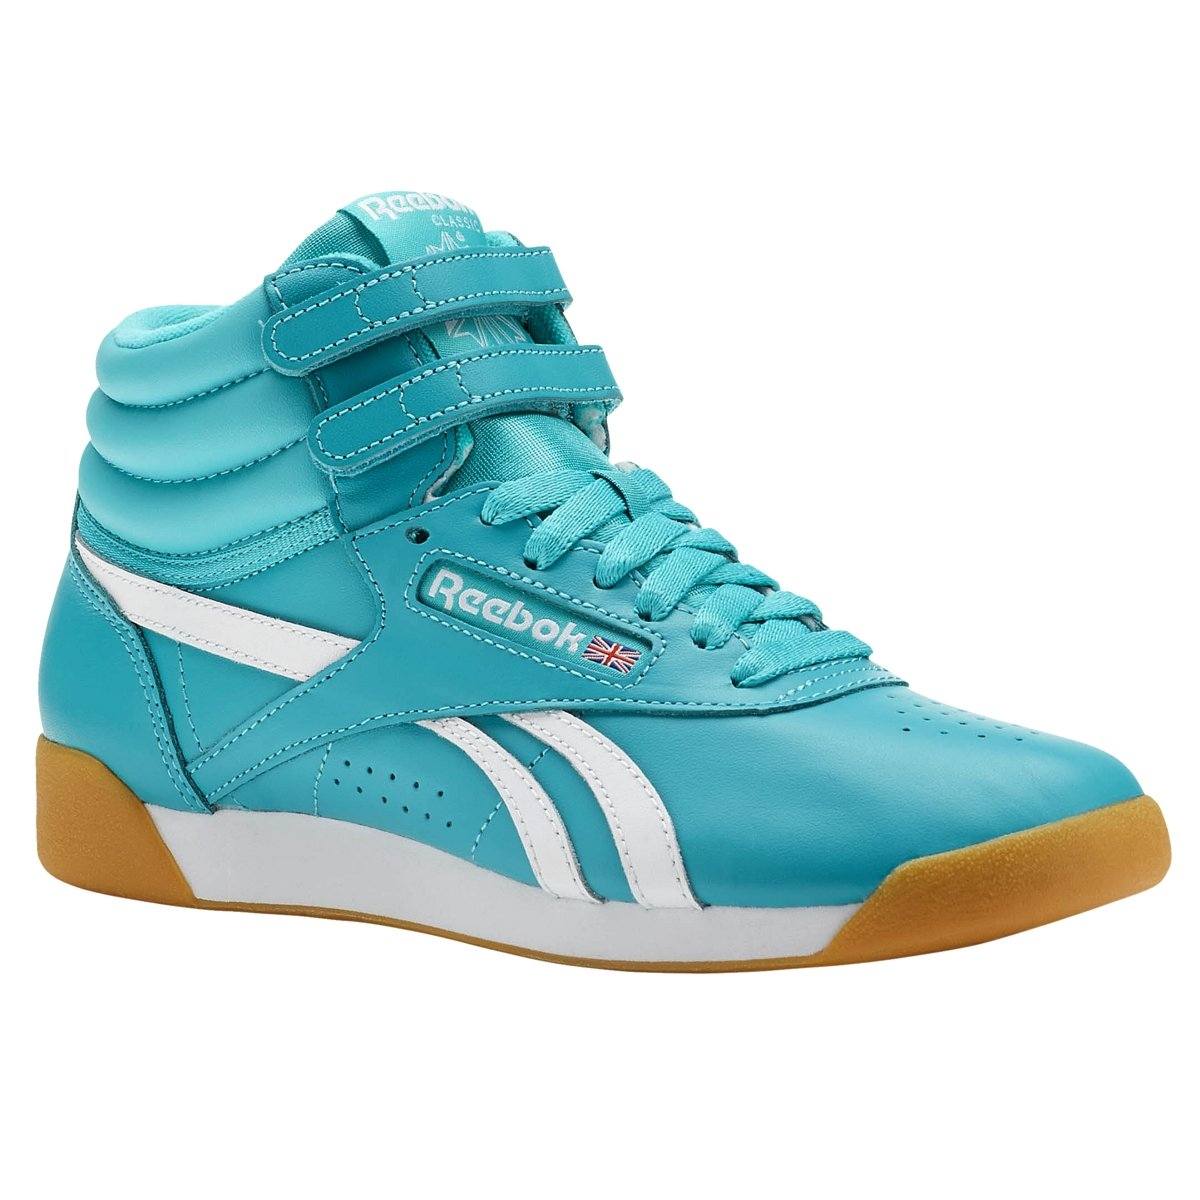 Reebok Freestyle Hi Suede Shoe Women's Casual 5 Solid Teal-White-Gum by Reebok (Image #1)